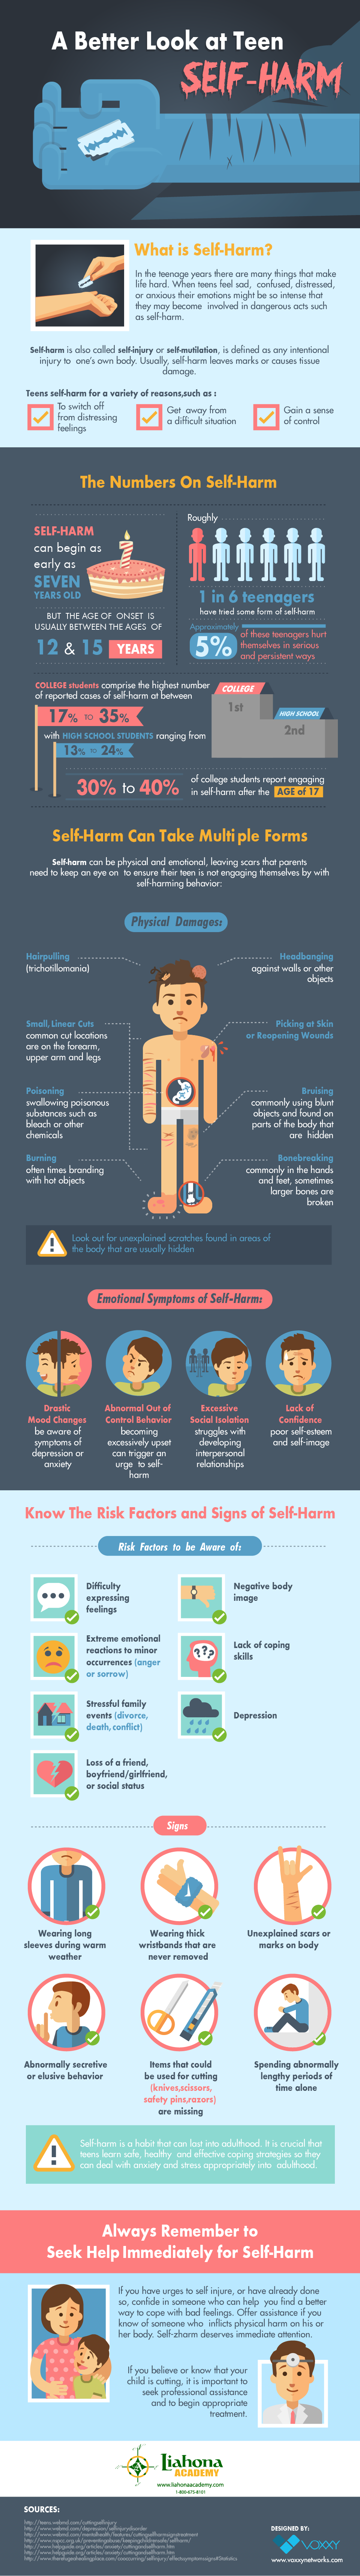 a-better-look-at-teen-self-harm-infographic-plaza